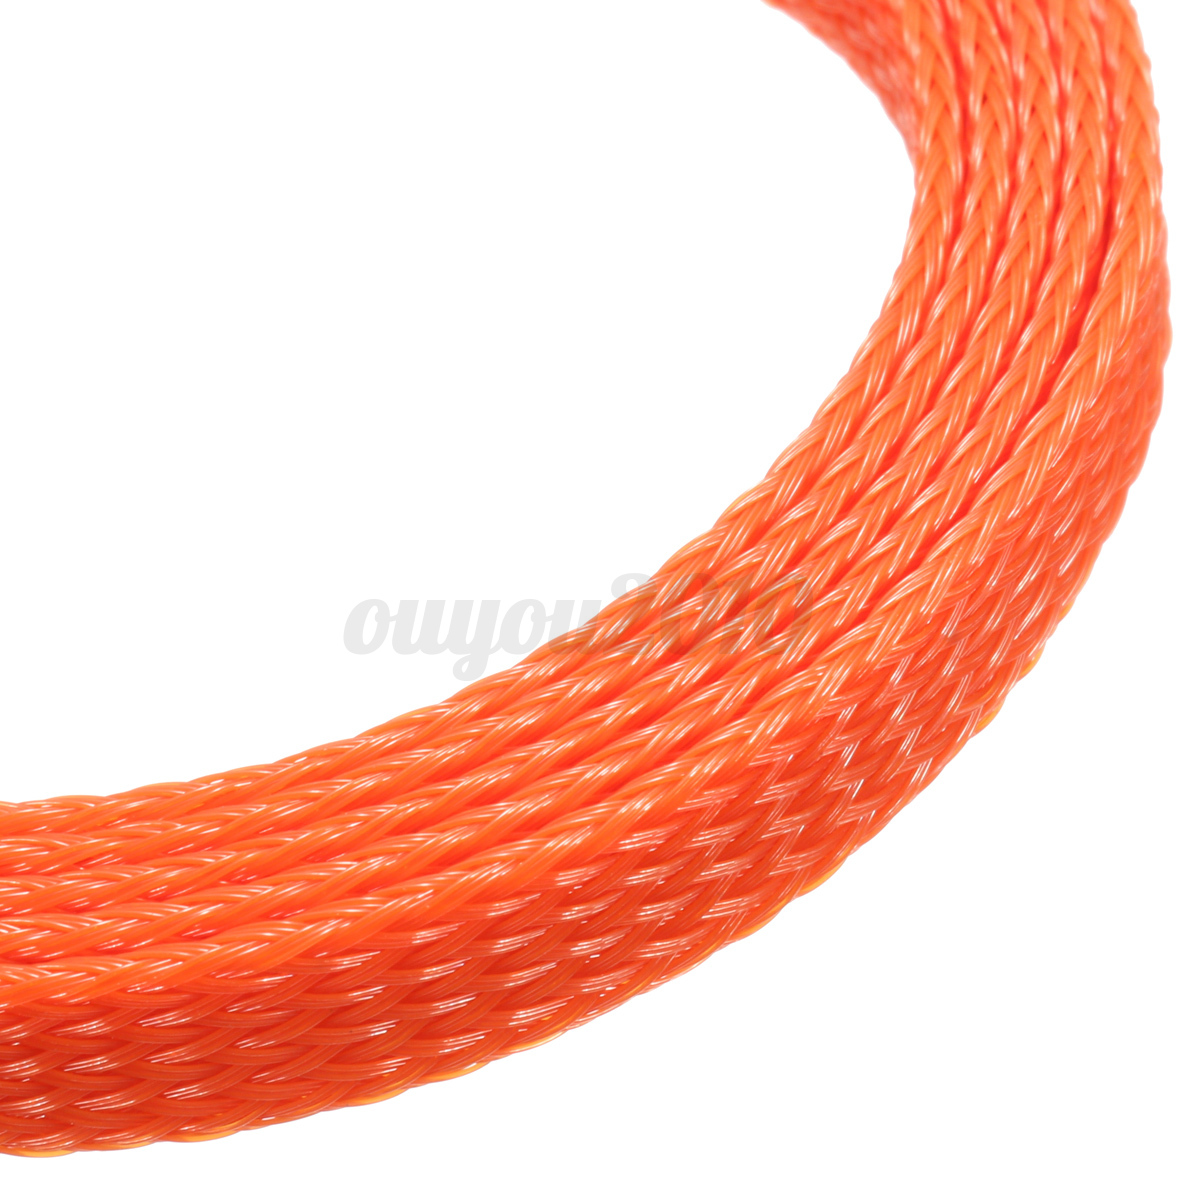 16 pin wire harness diagram 1m 8mm braided wire tidy mesh expandable sleeving cable ... #13